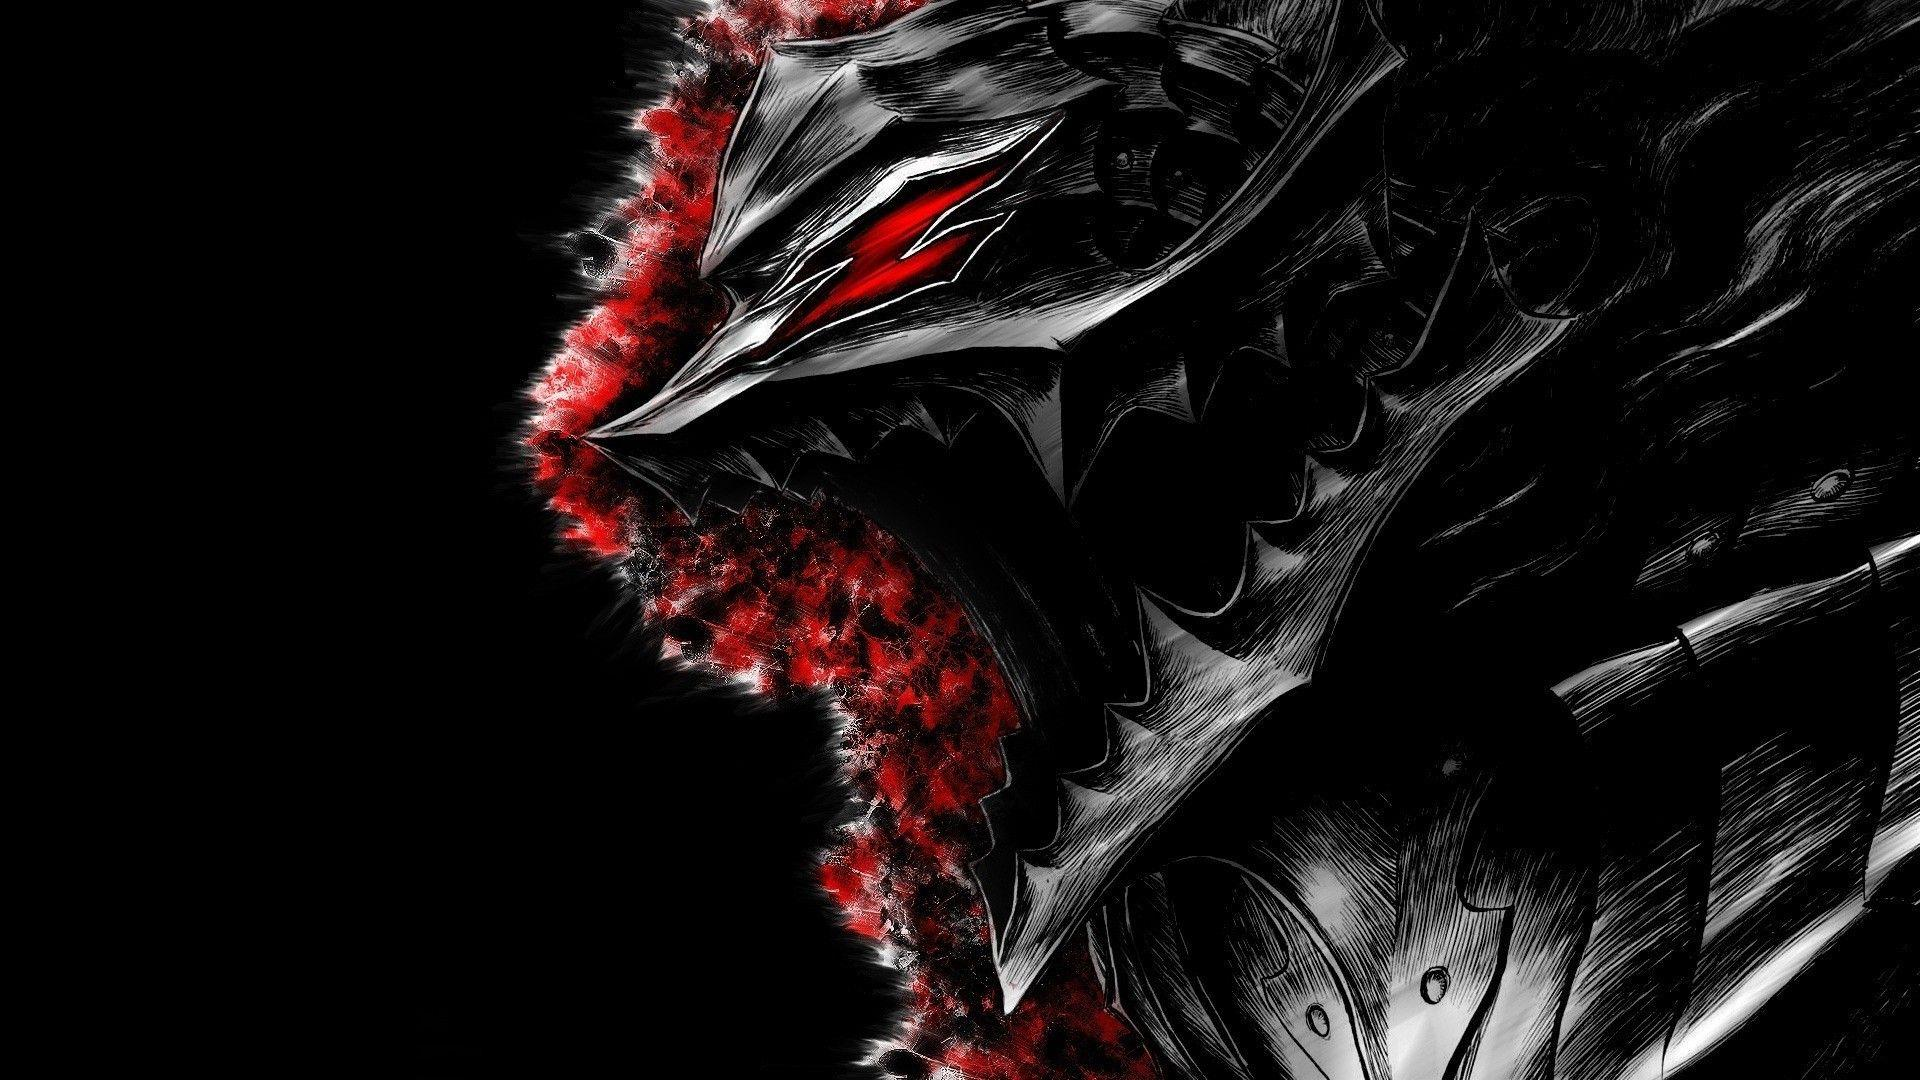 Berserk, Armor, Guts, Kentaro Miura Wallpapers HD / Desktop and